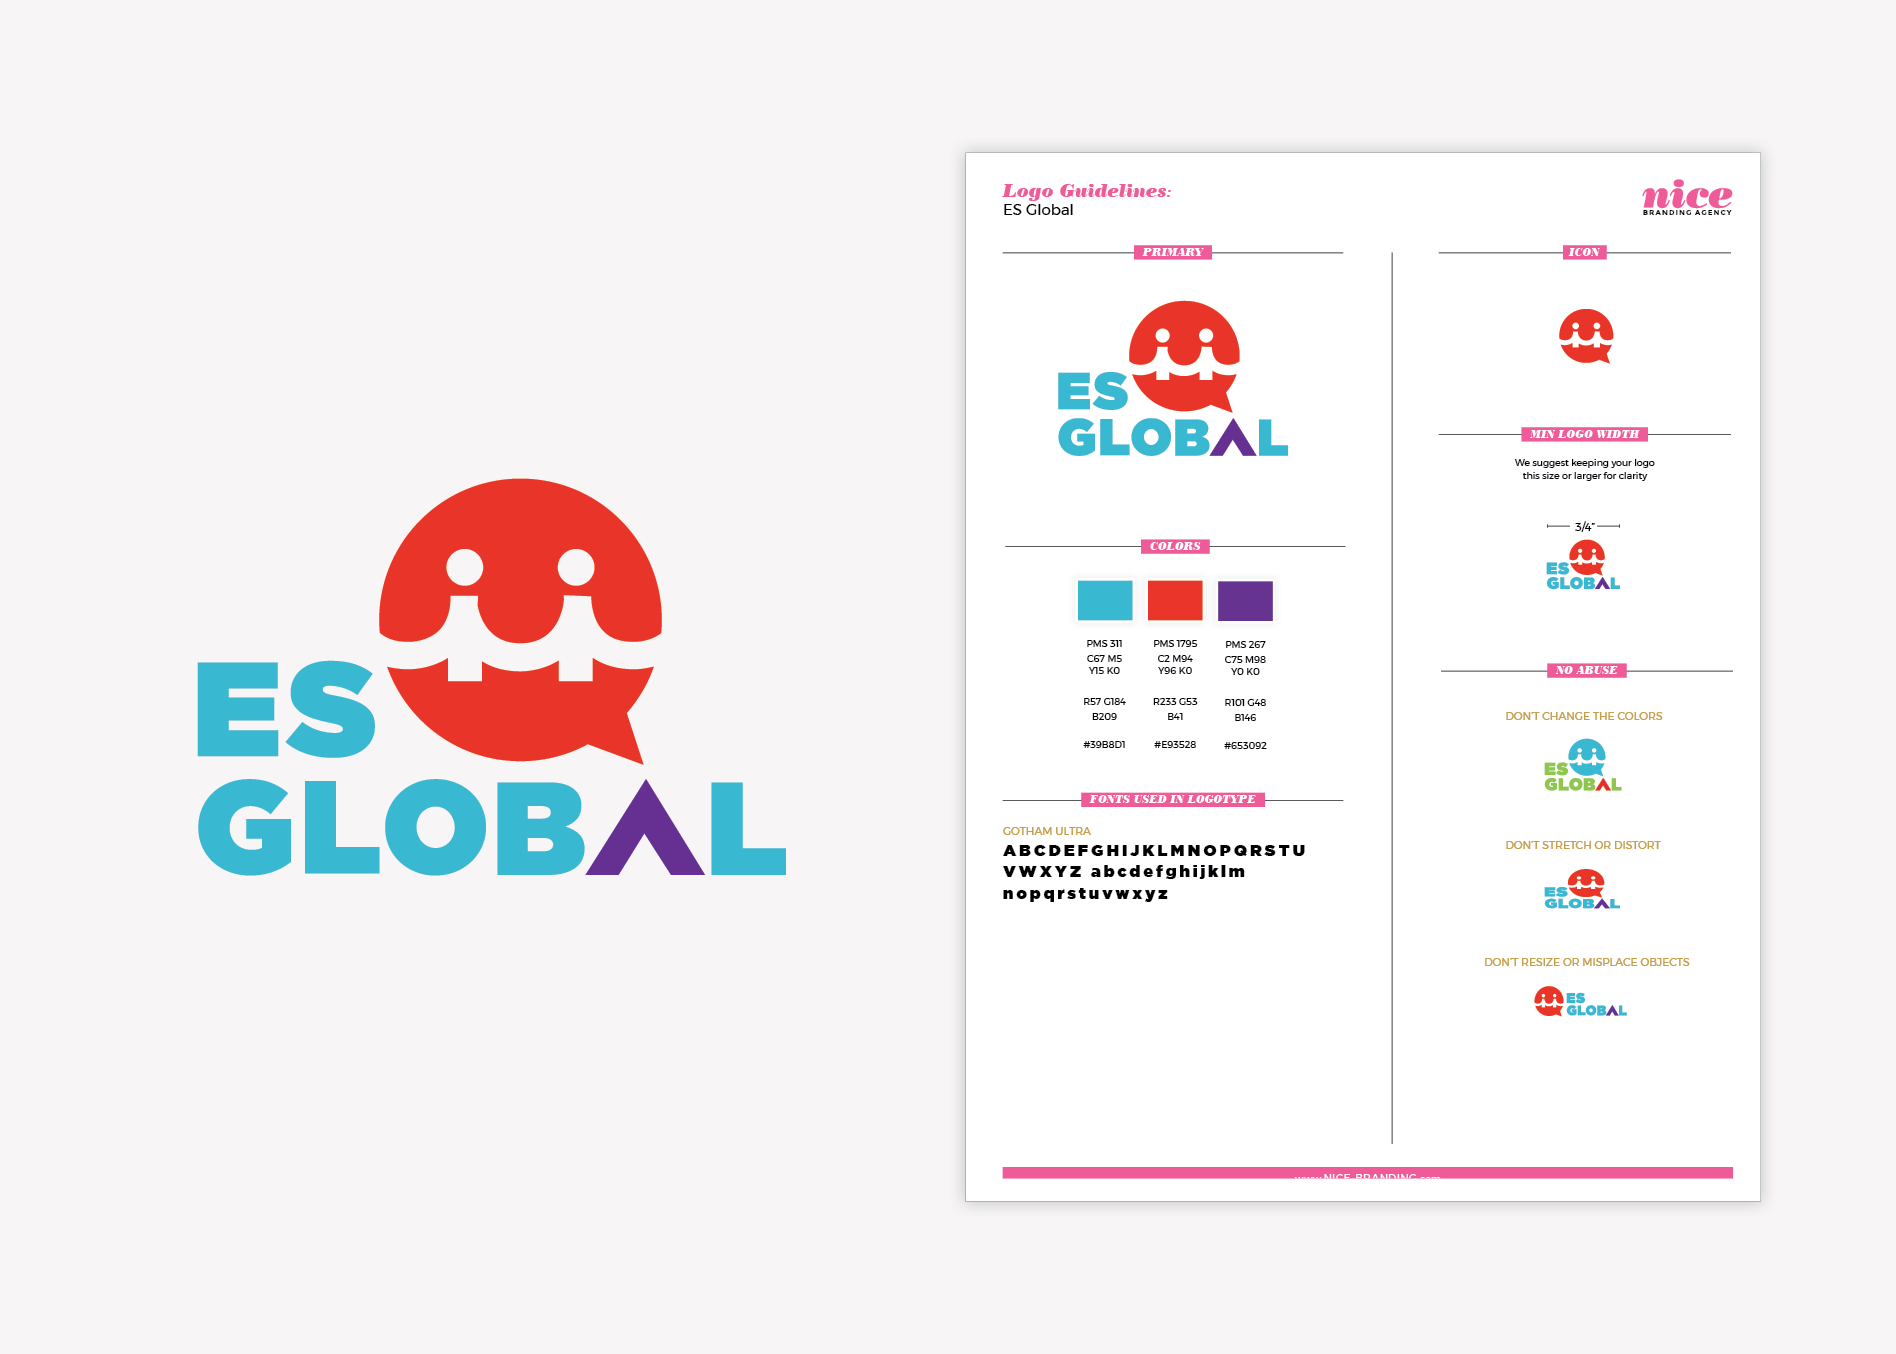 global logo guidelines